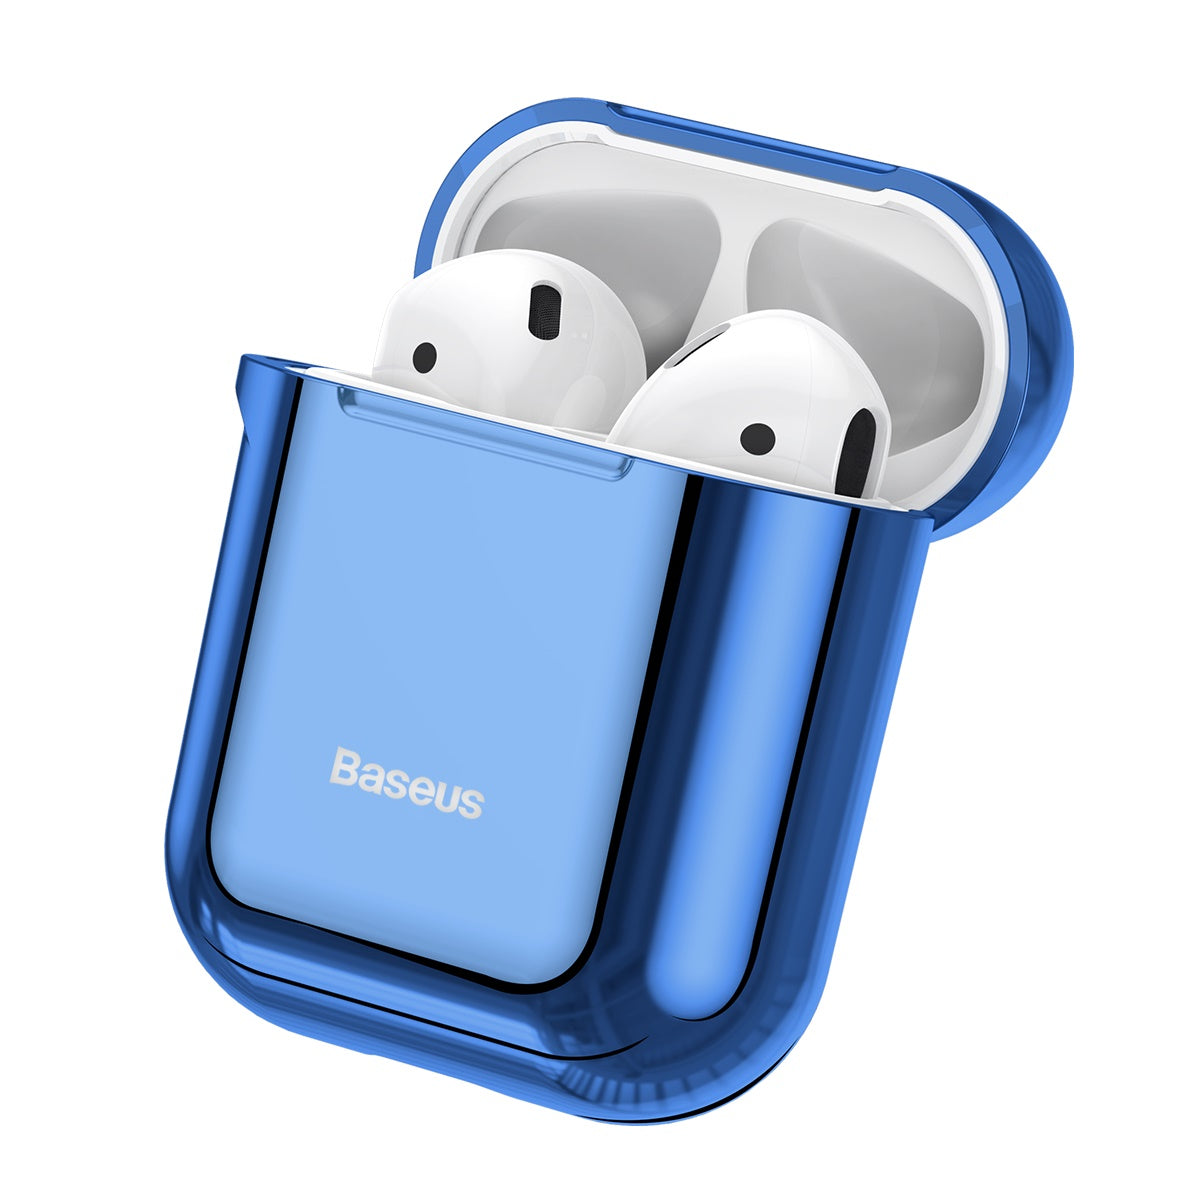 Baseus Shining Hook Case for AirPods 1st / 2nd Gen